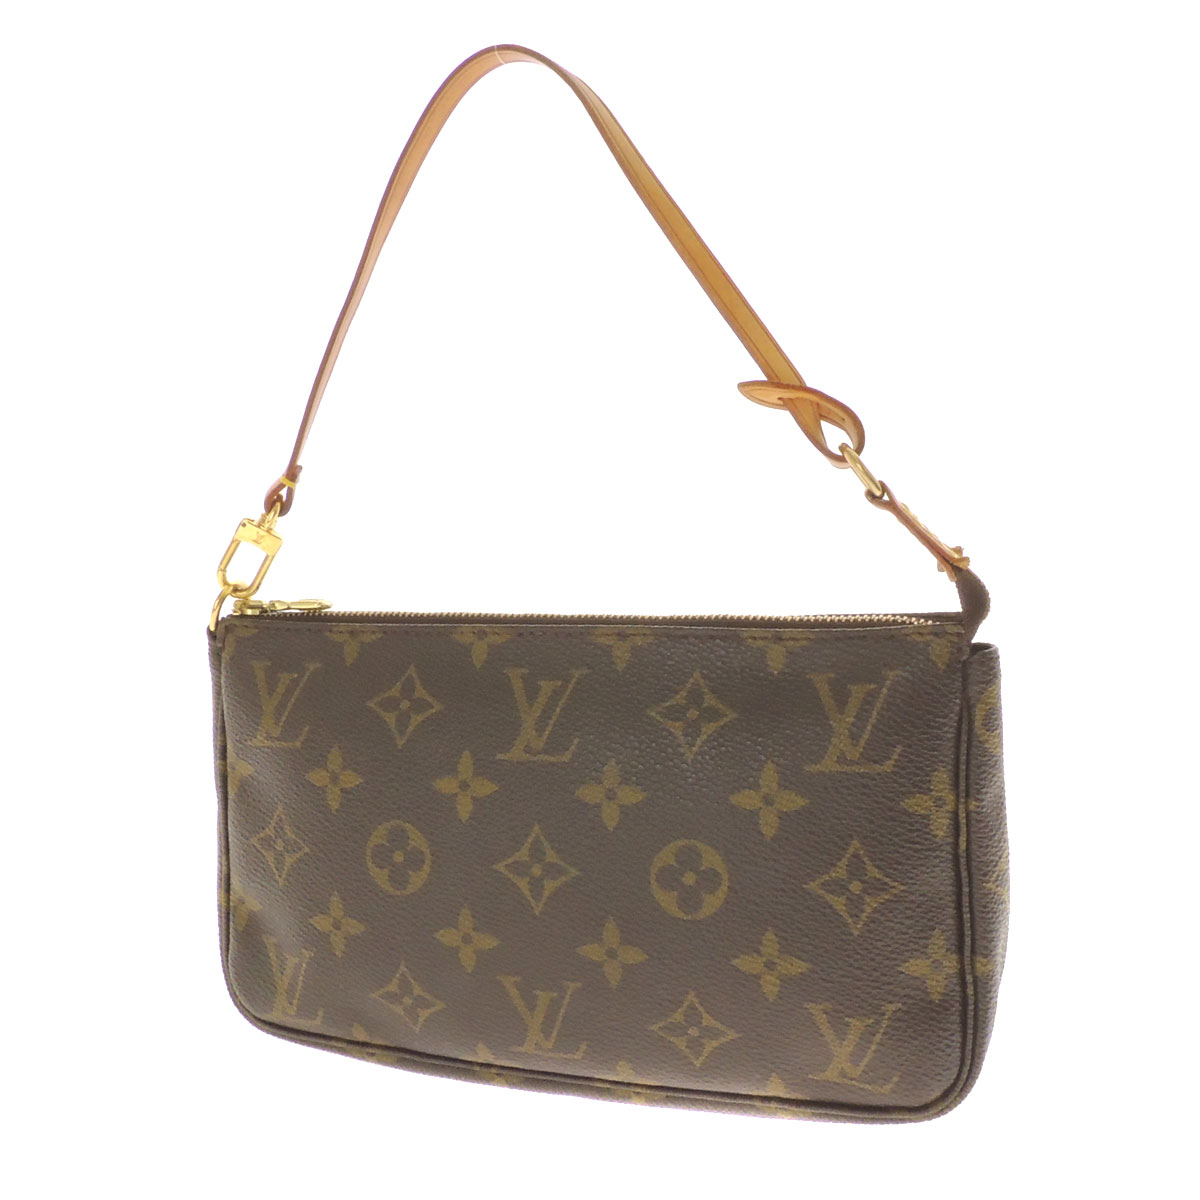 LOUIS VUITTON アクセソワール M51980 old accessories porch monogram canvas Lady's fs3gm